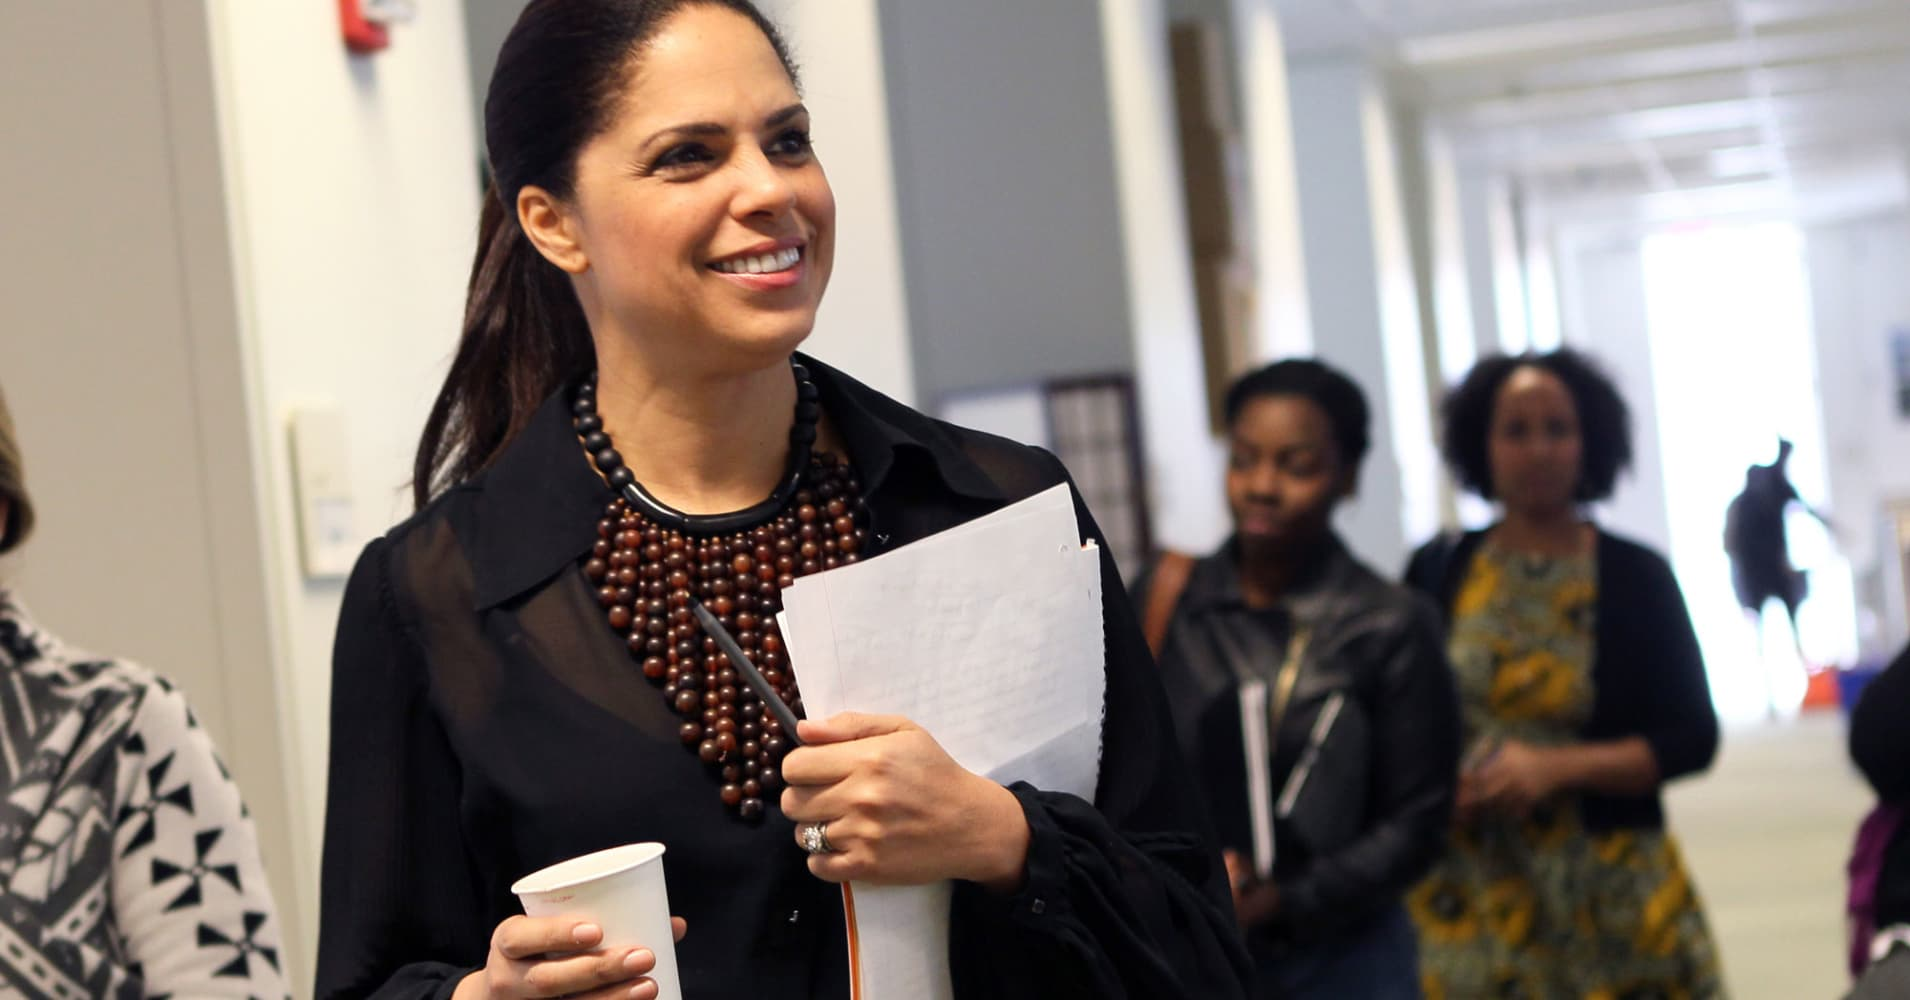 Broadcast journalist Soledad O'Brien walks thorough the Office of Student Life for a press conference at UMass Boston before a speaking engagement at the school.